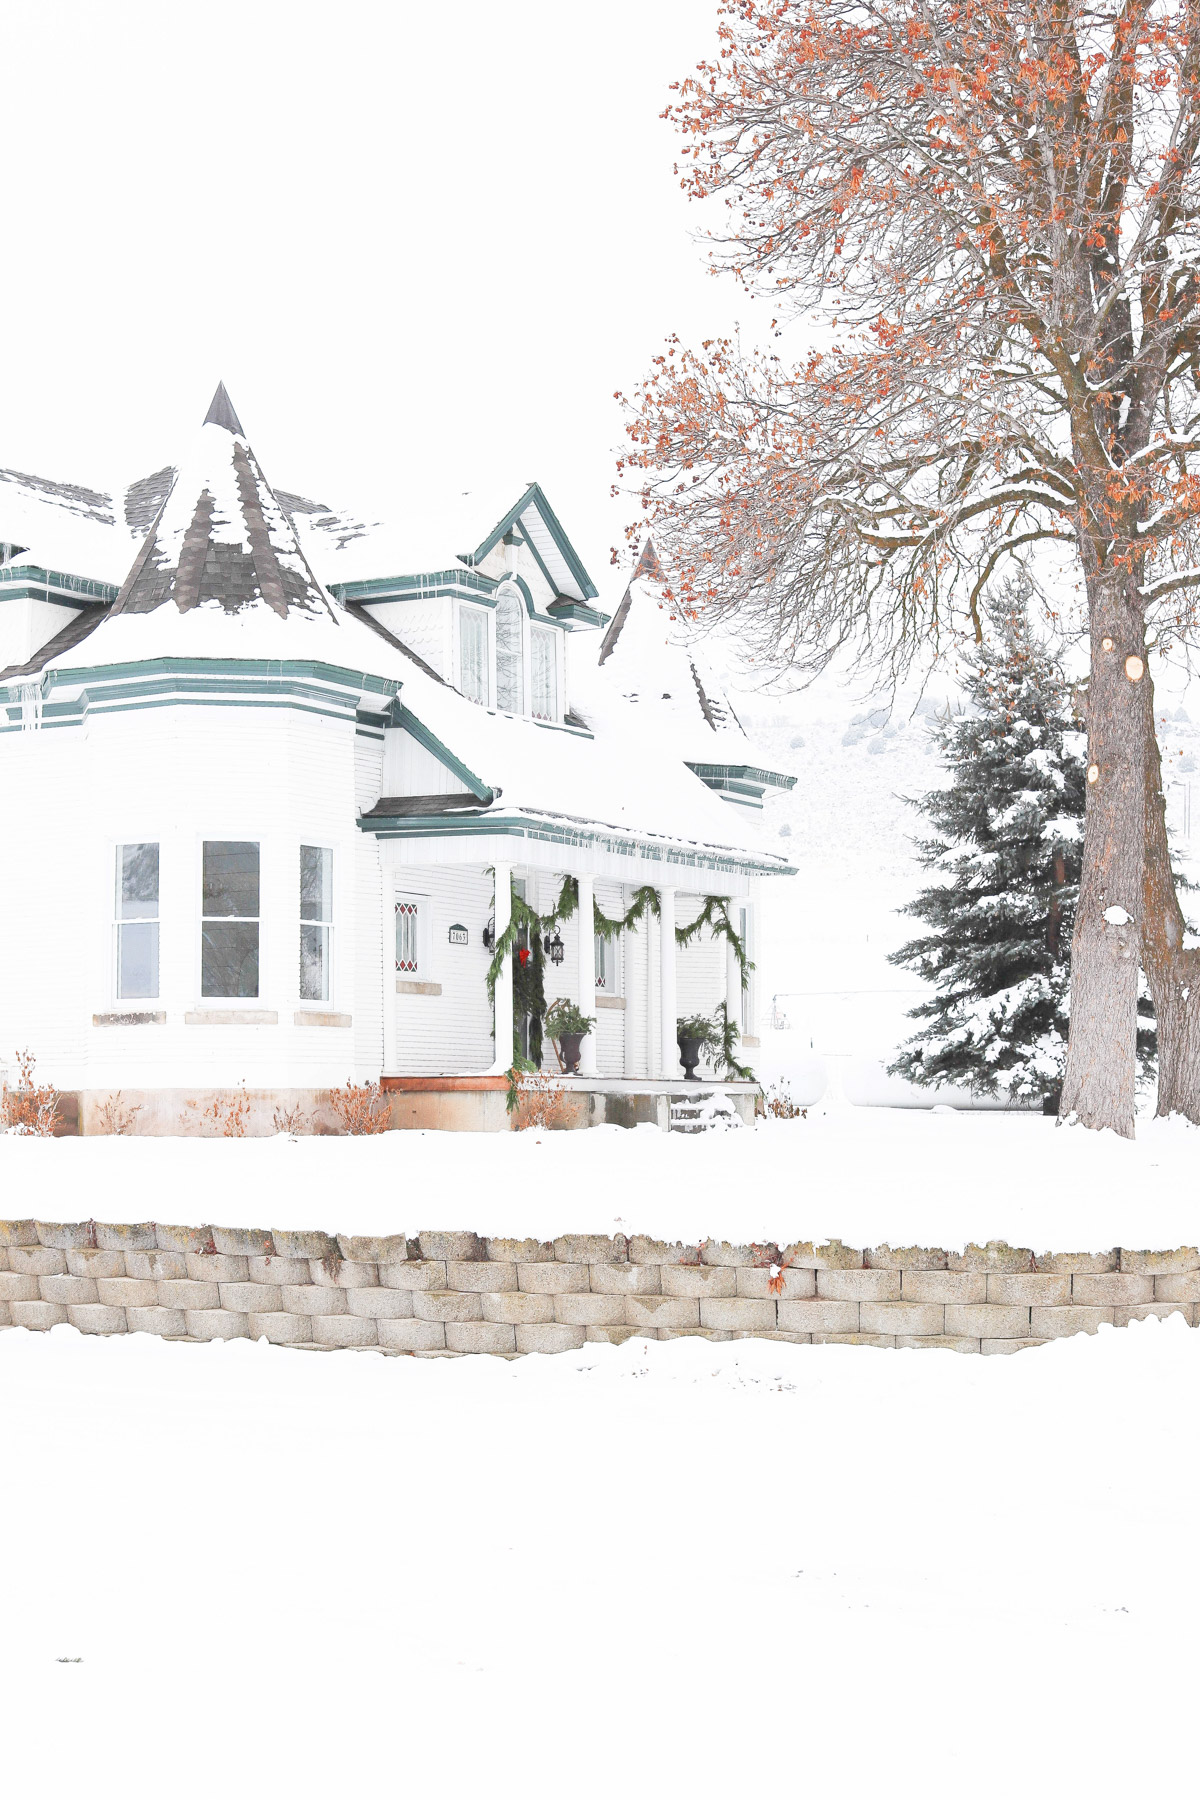 Tour this stunning Victorian home all decked out for Christmas #victorian #snowfall #porch #farmhouse #christmasdecor